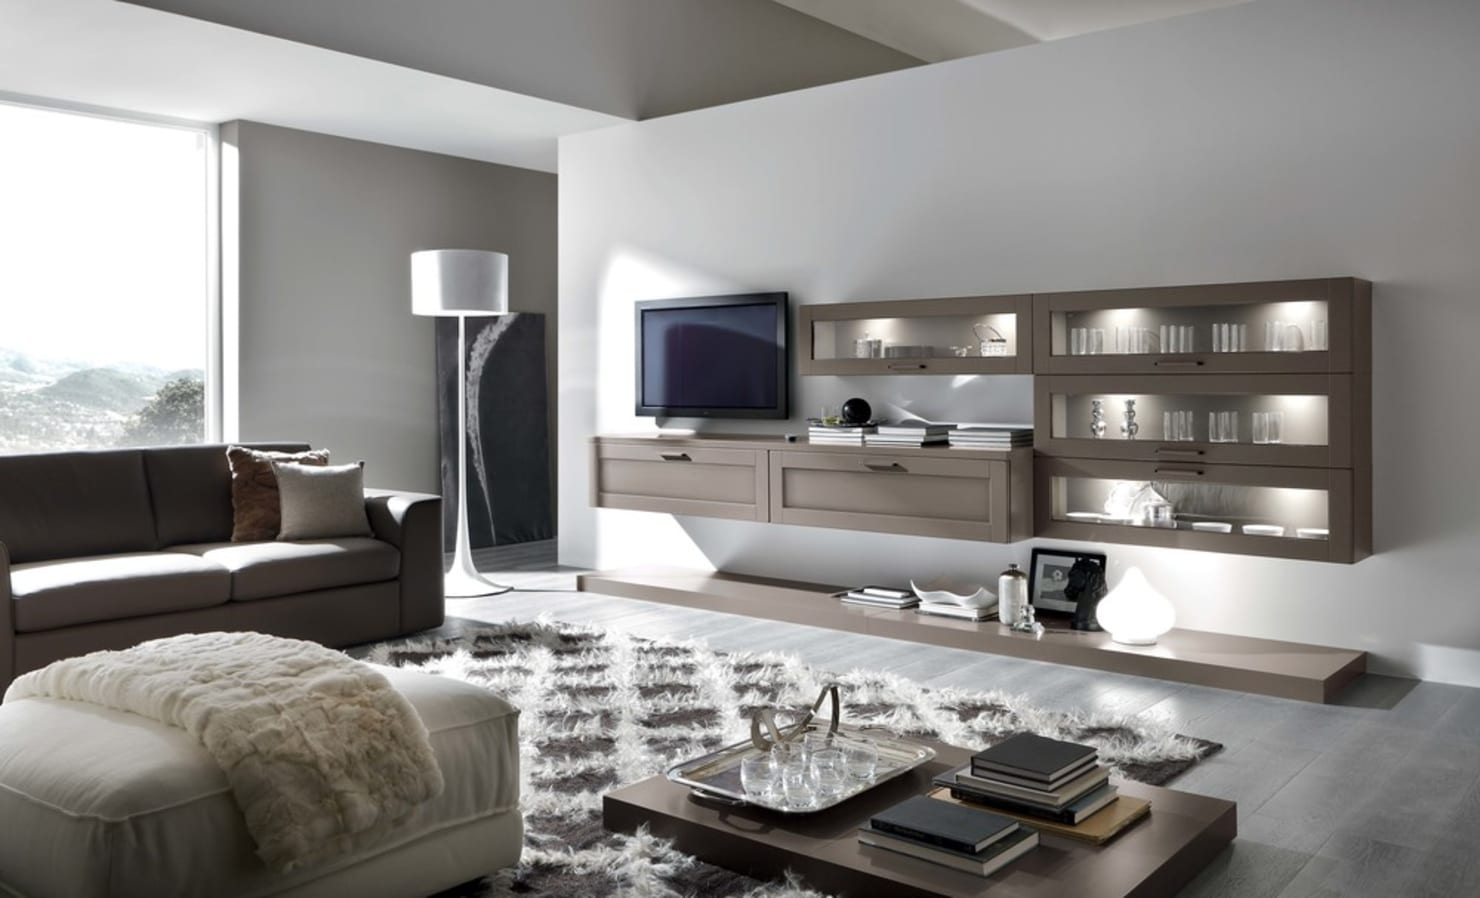 Luxury living room storage furniture you'll love!